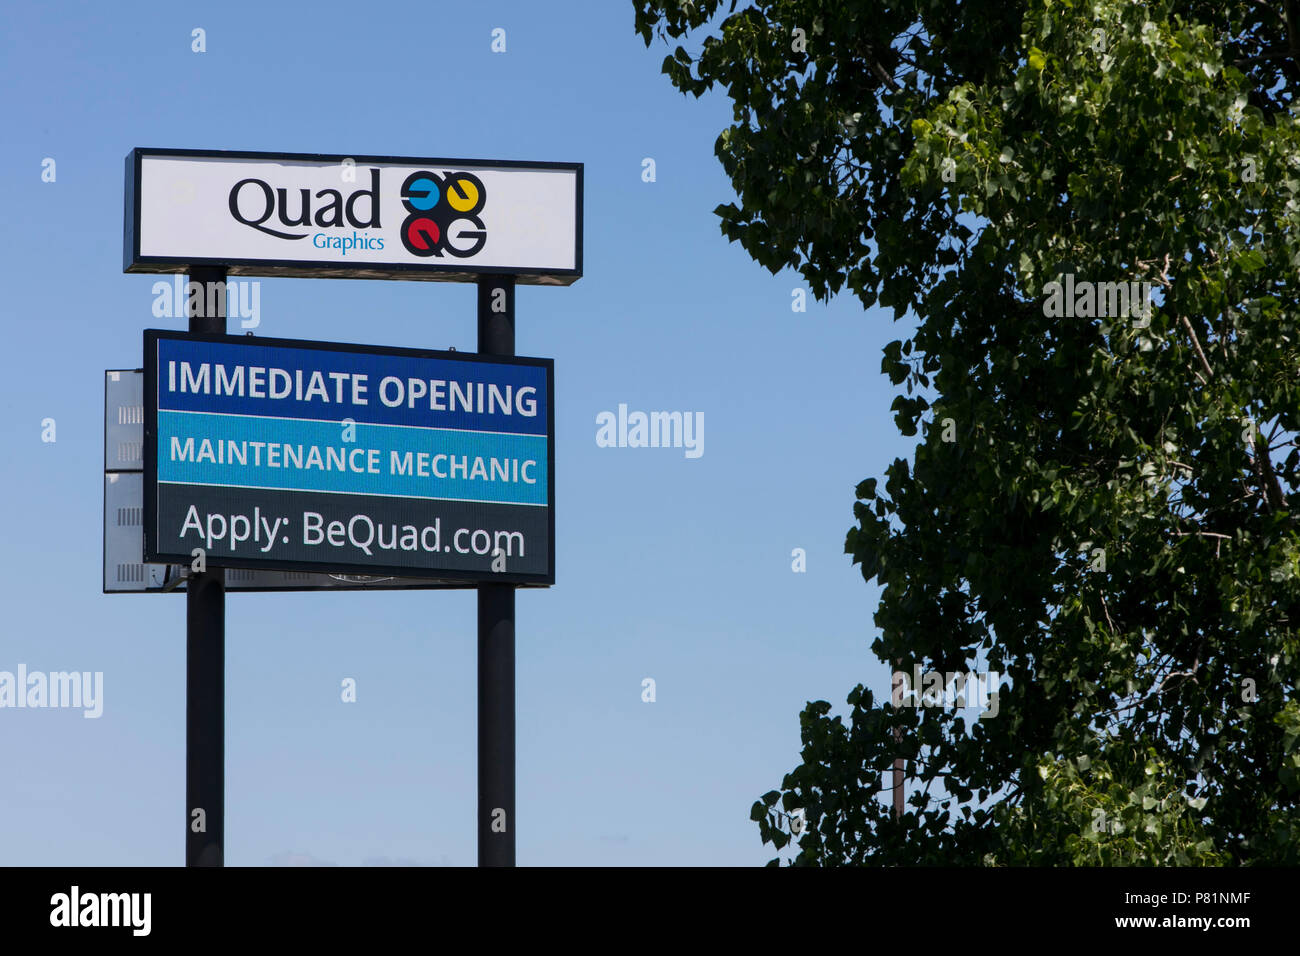 A logo sign outside of a facility occupied by Quad/Graphics in Lomira, Wisconsin, on June 24, 2018. - Stock Image